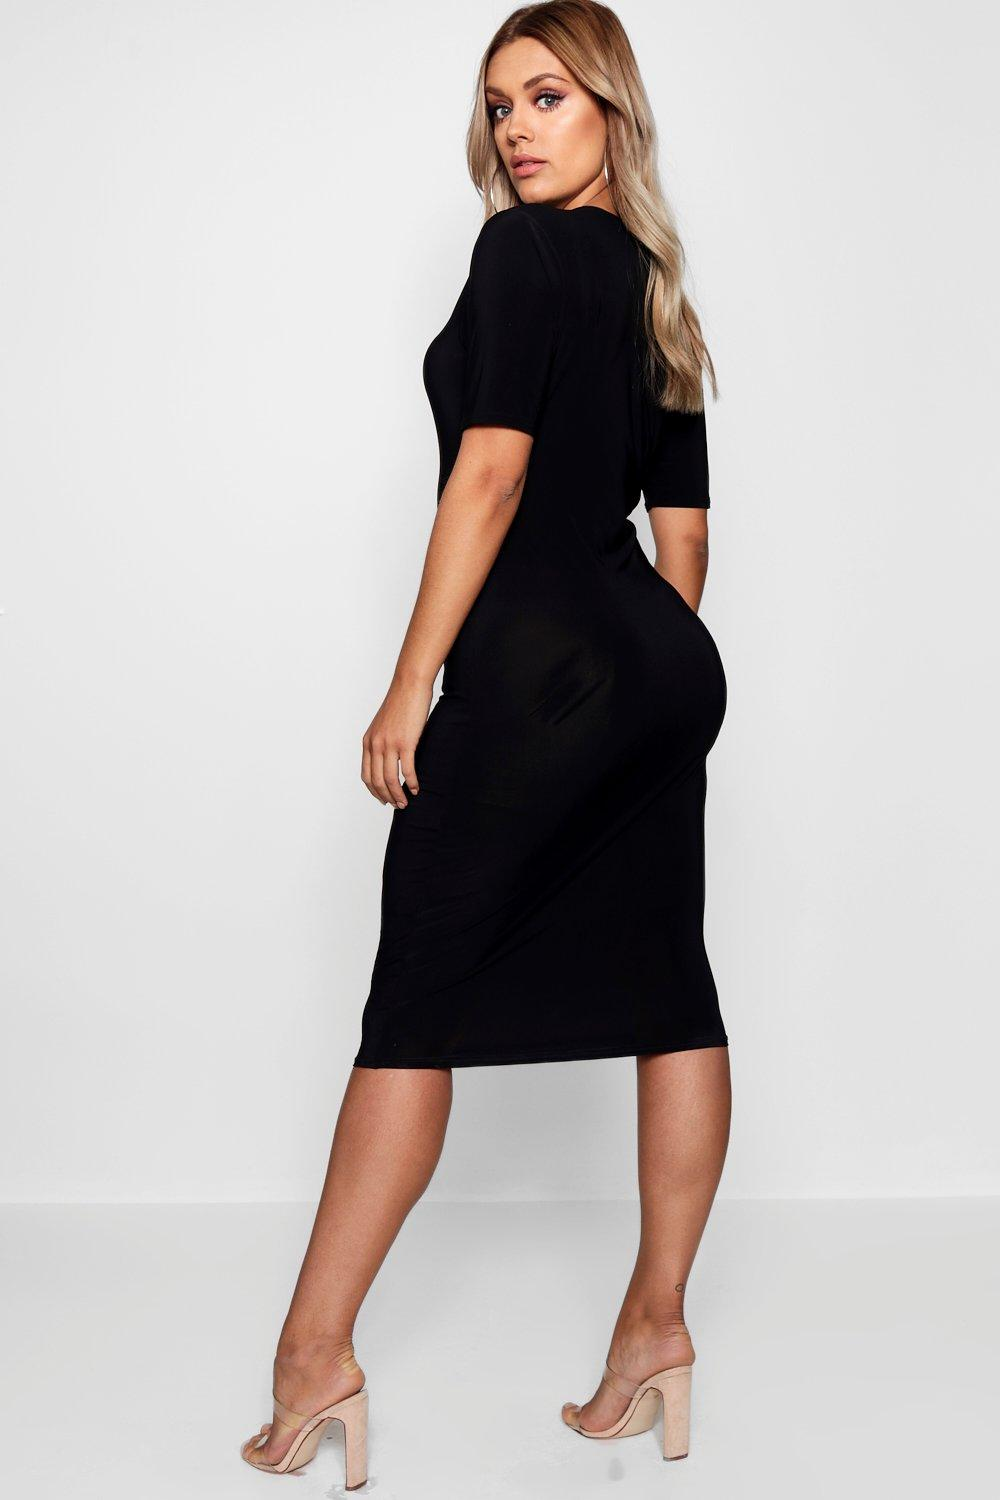 Dresses in size plus women for bodycon south africa